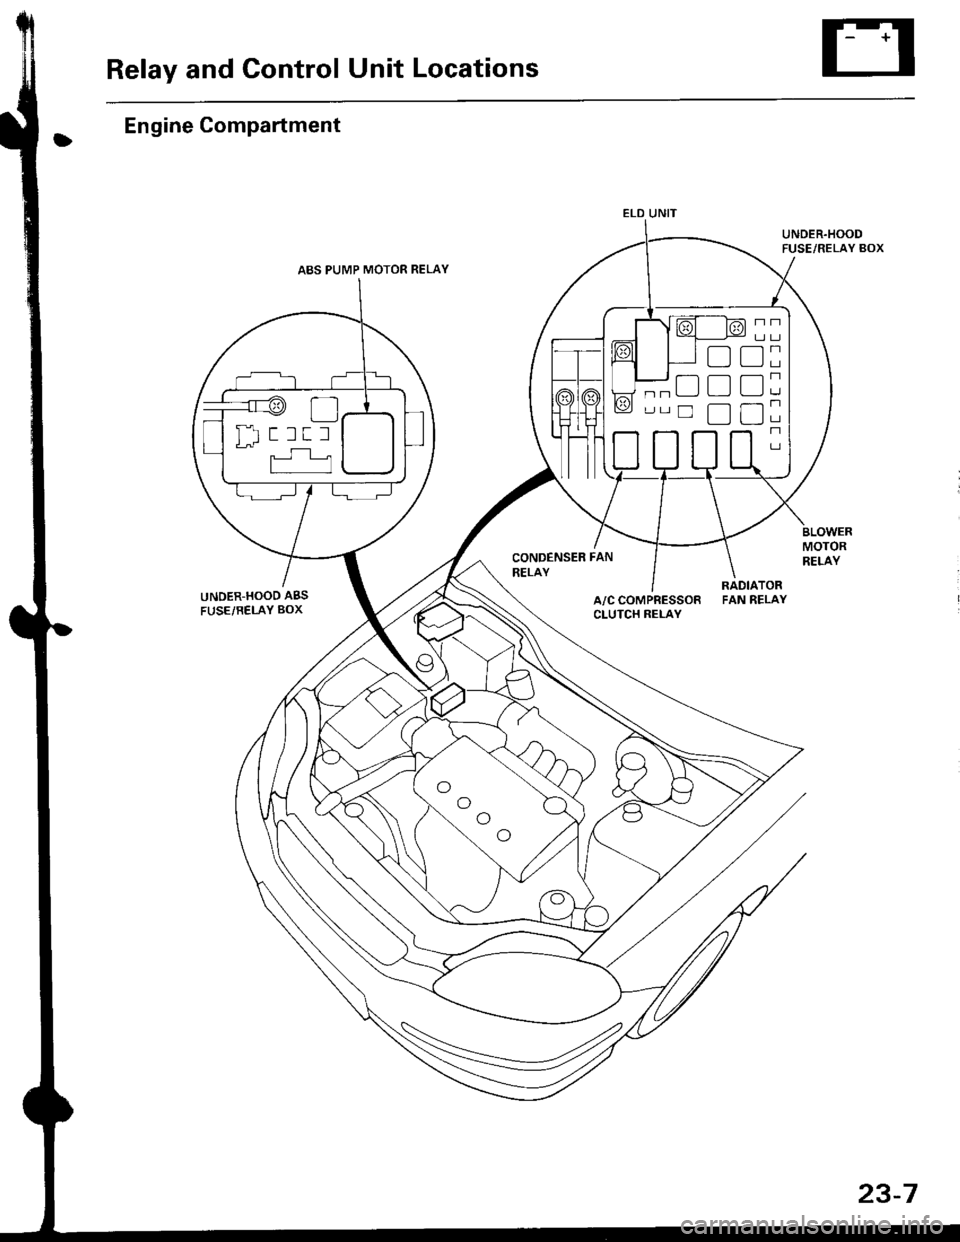 w960_6068 1476 abs honda civic 1997 6 g workshop manual 97 civic under hood fuse box diagram at crackthecode.co